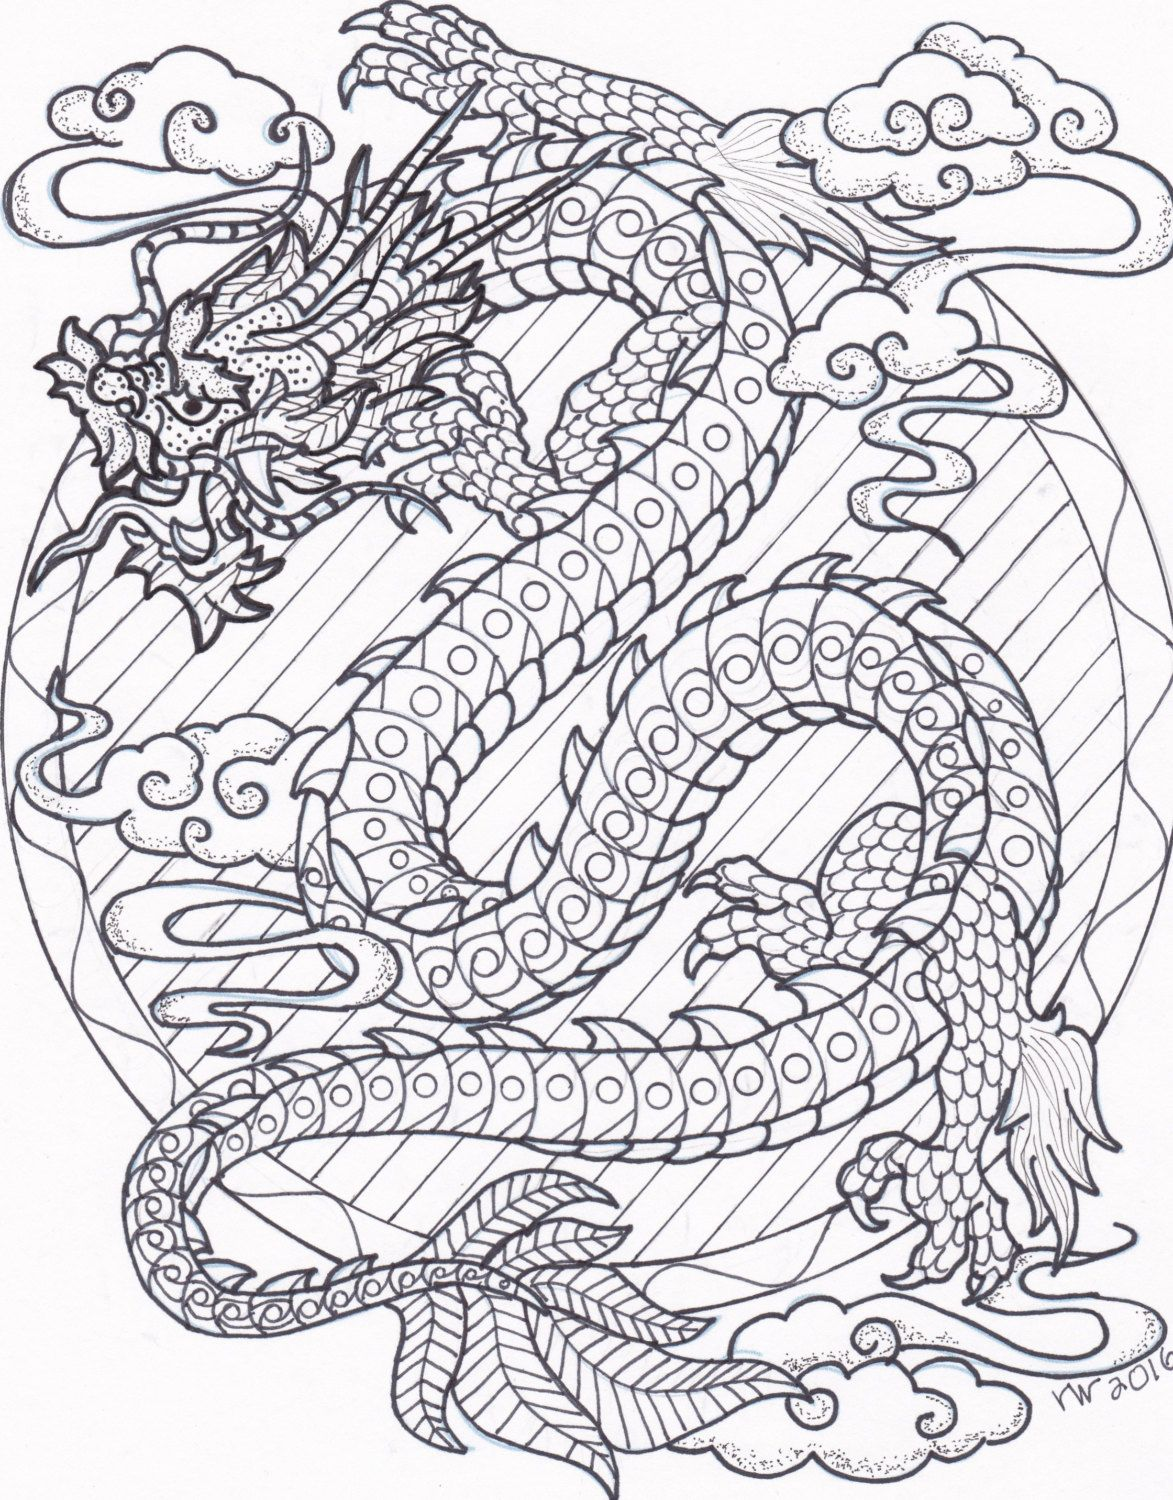 1173x1500 Coloring Page, Zentangle, Chinese Dragon Digital Coloring Pdf